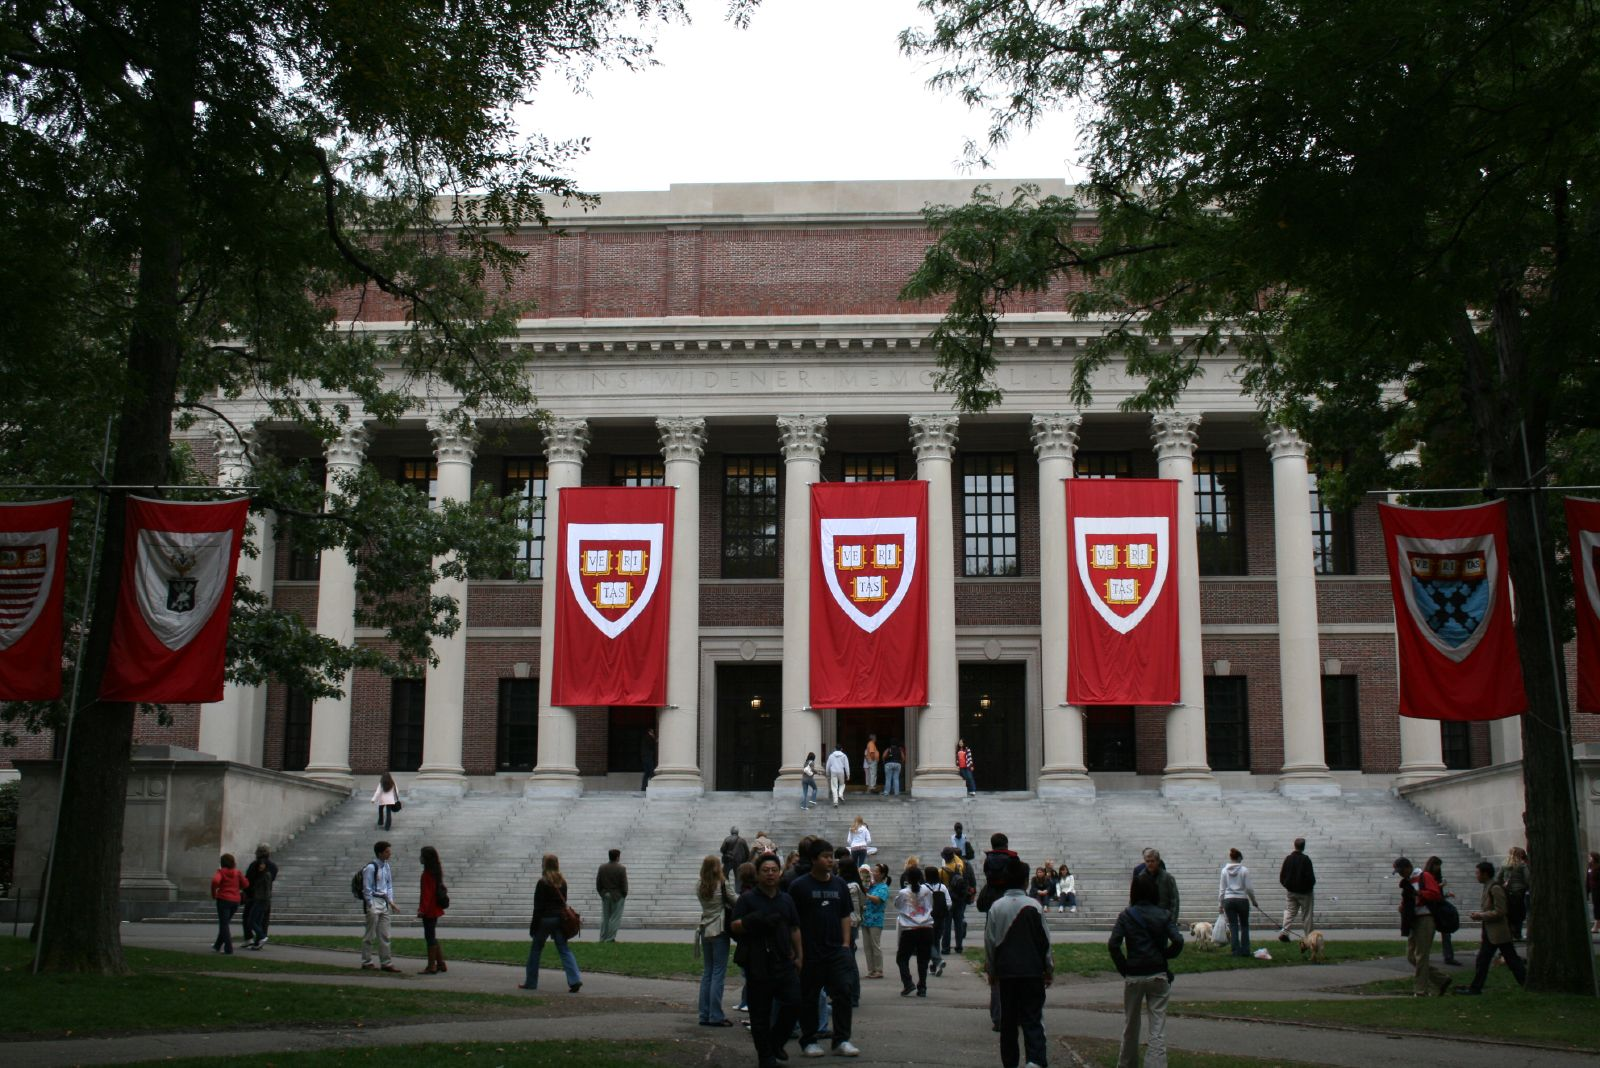 The US has 255 universities that qualified for the overall ranking, more than any other nation.